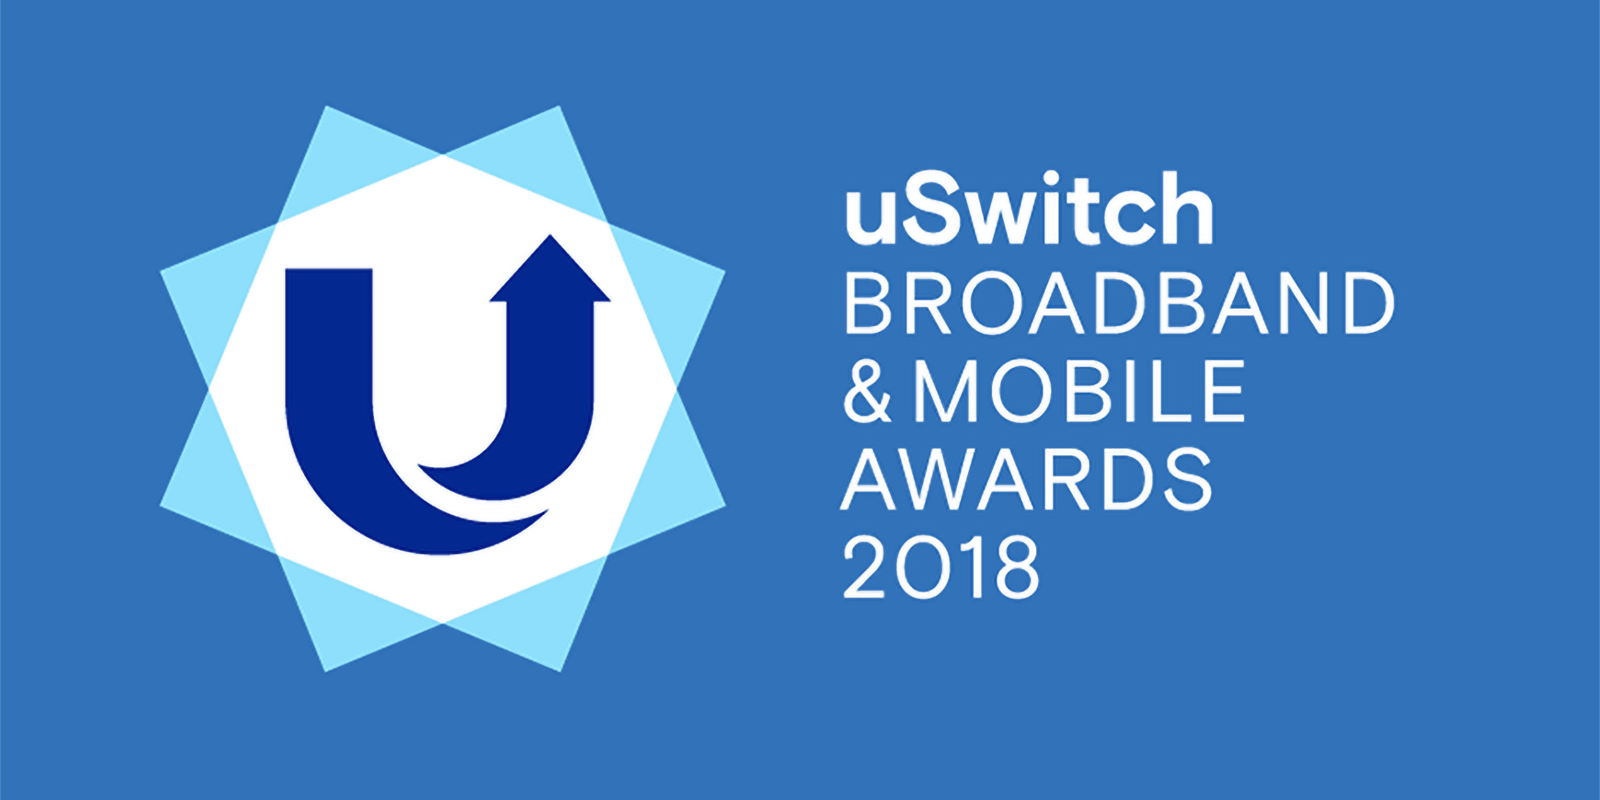 Uplands Mobiles Ltd O2 Uplands Network Partner Is Voted The Uswitch Uk S Best Mobile Phone Network